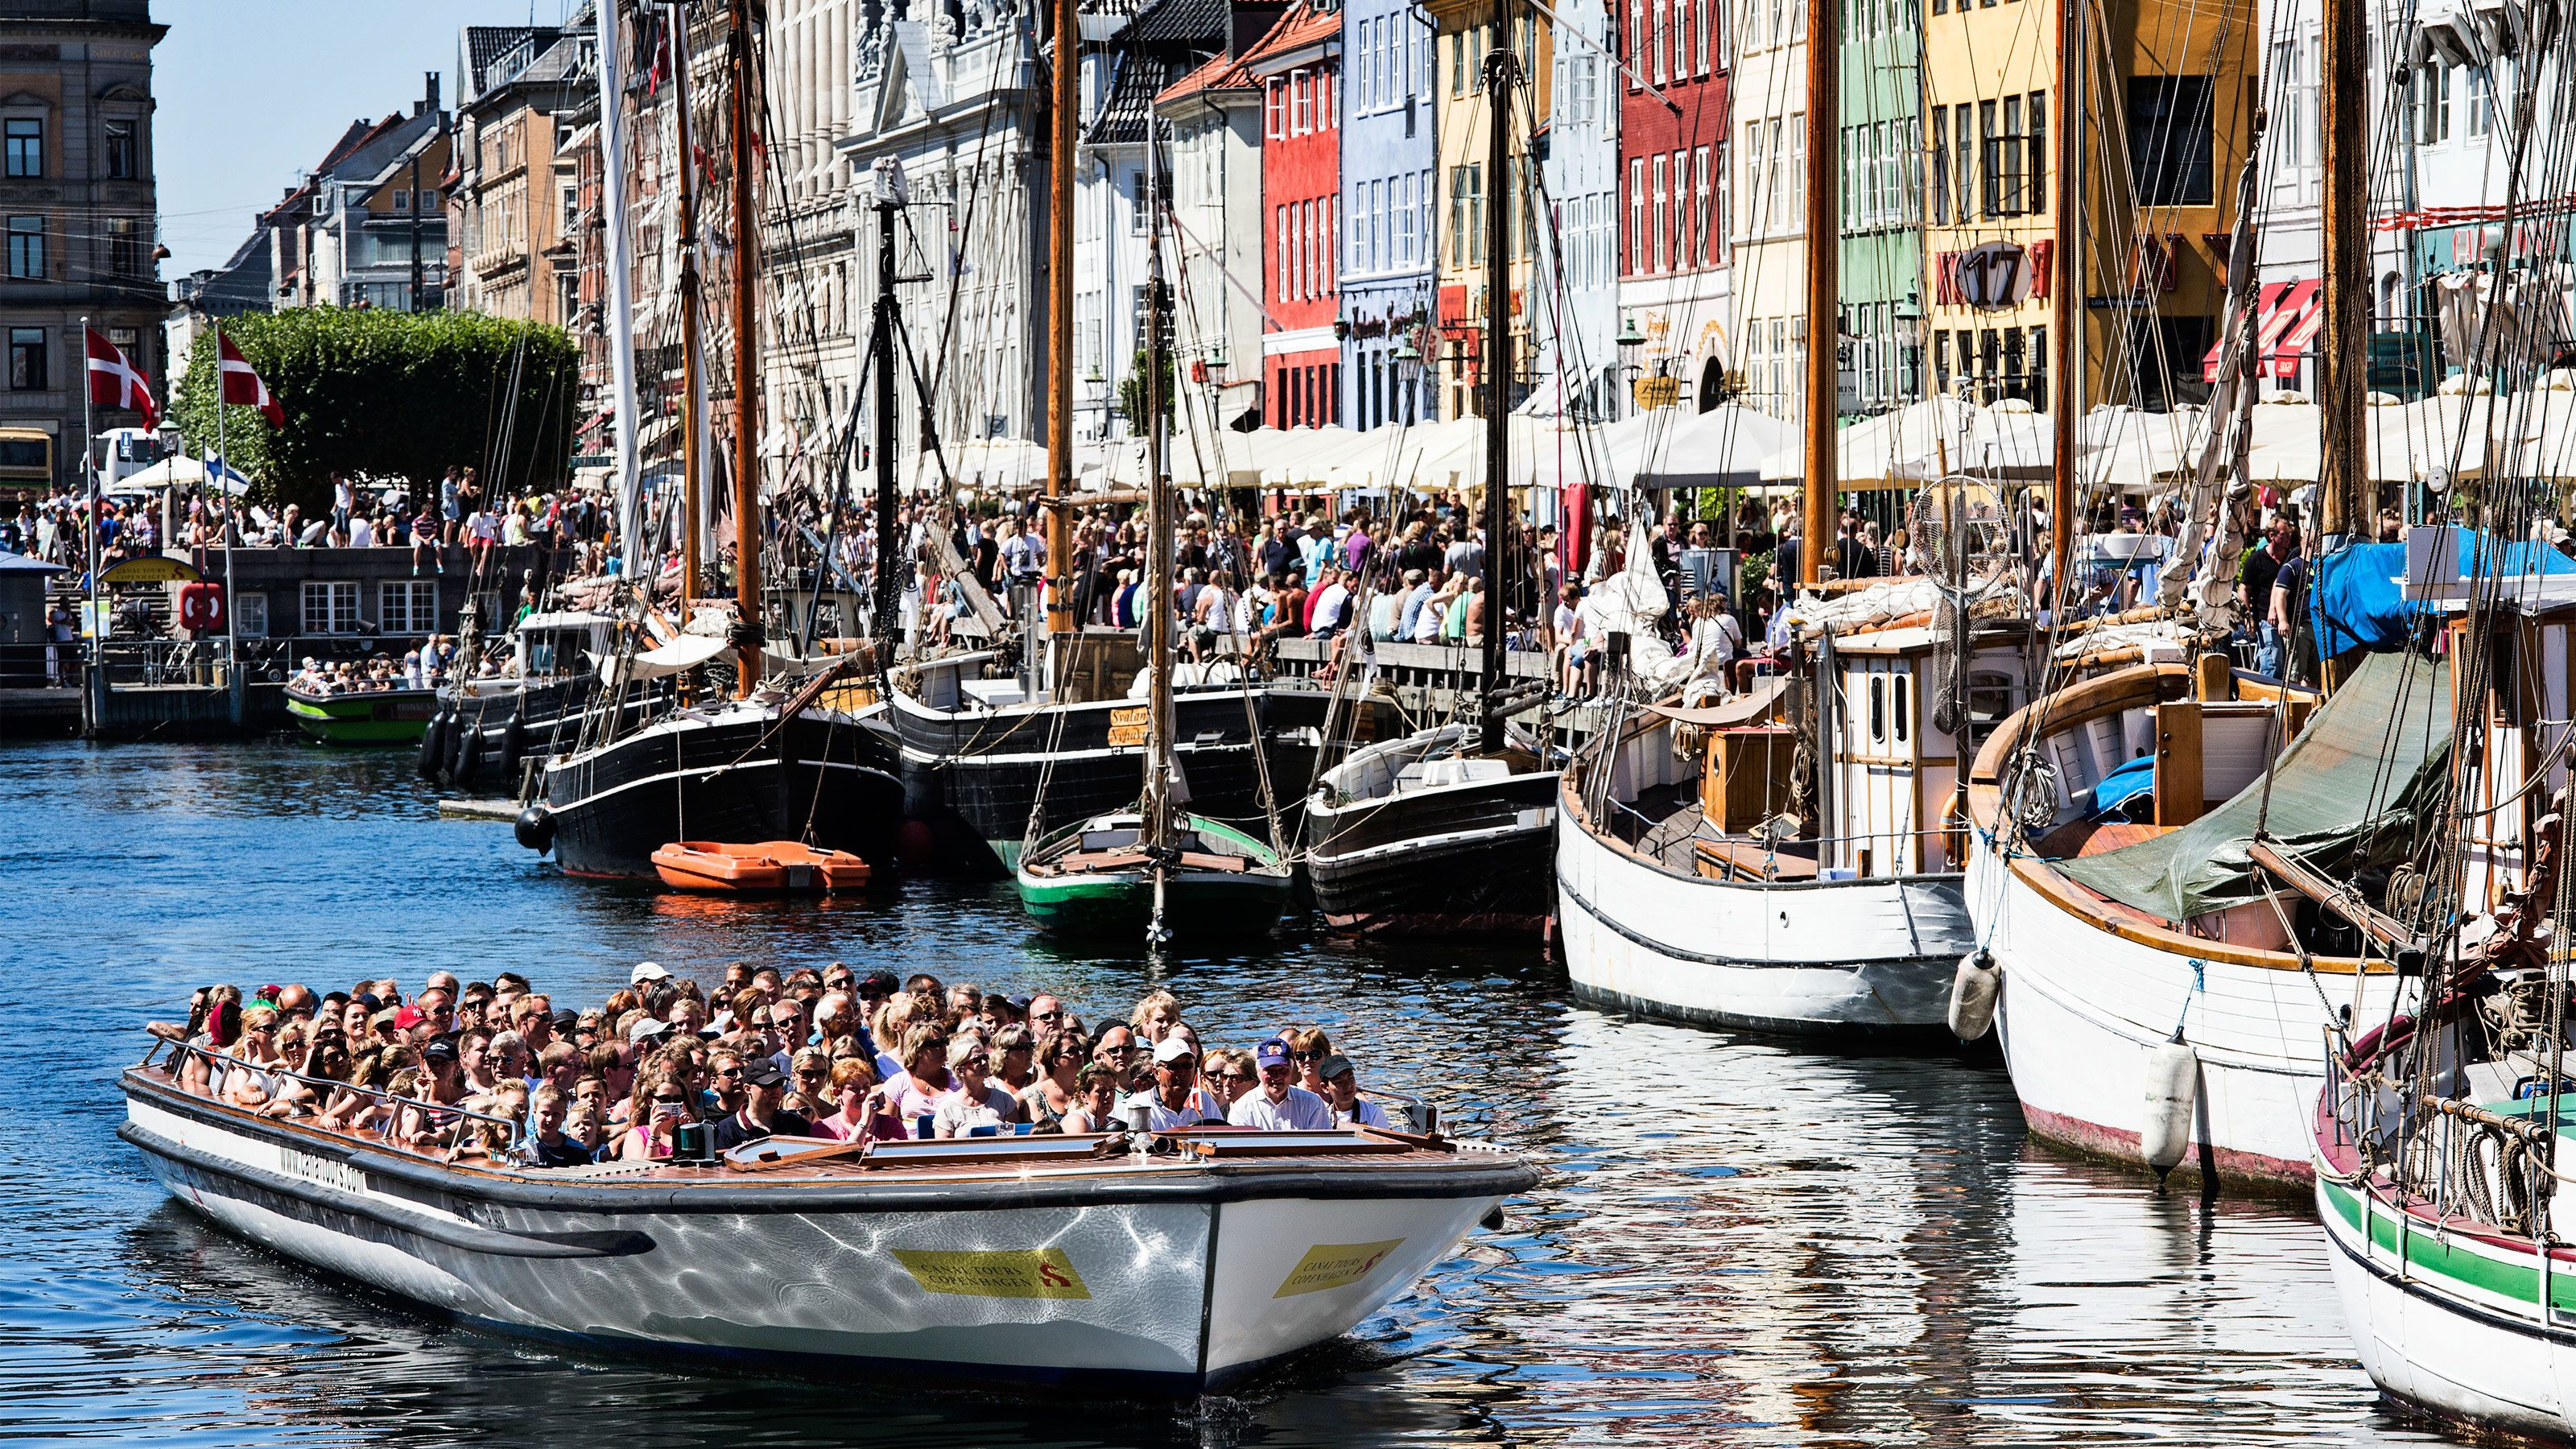 Boat full of people passing by a crowded street in Copenhagen